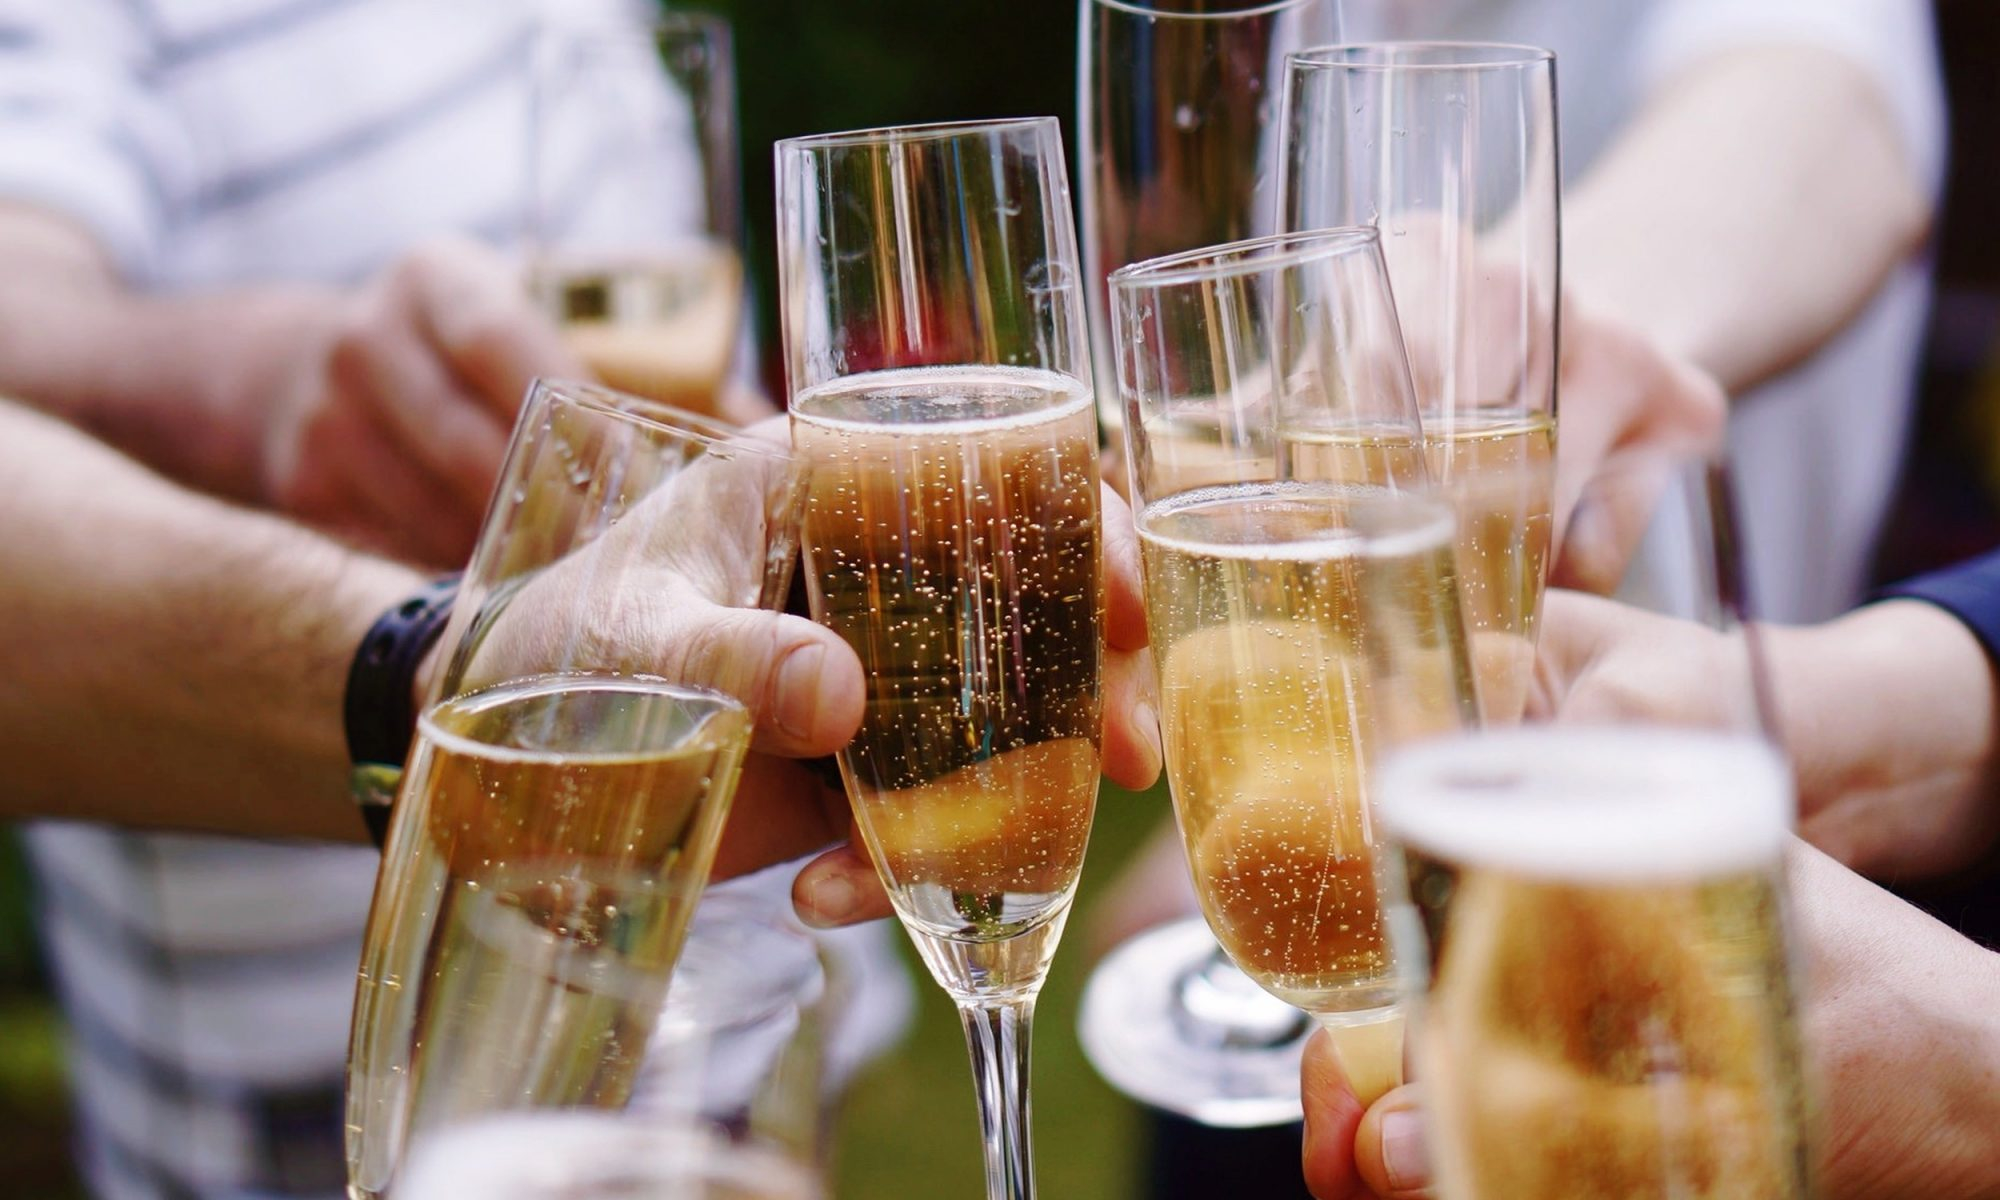 EC: These Sparkling Wines Give YoutheBest Bang forYour Buck